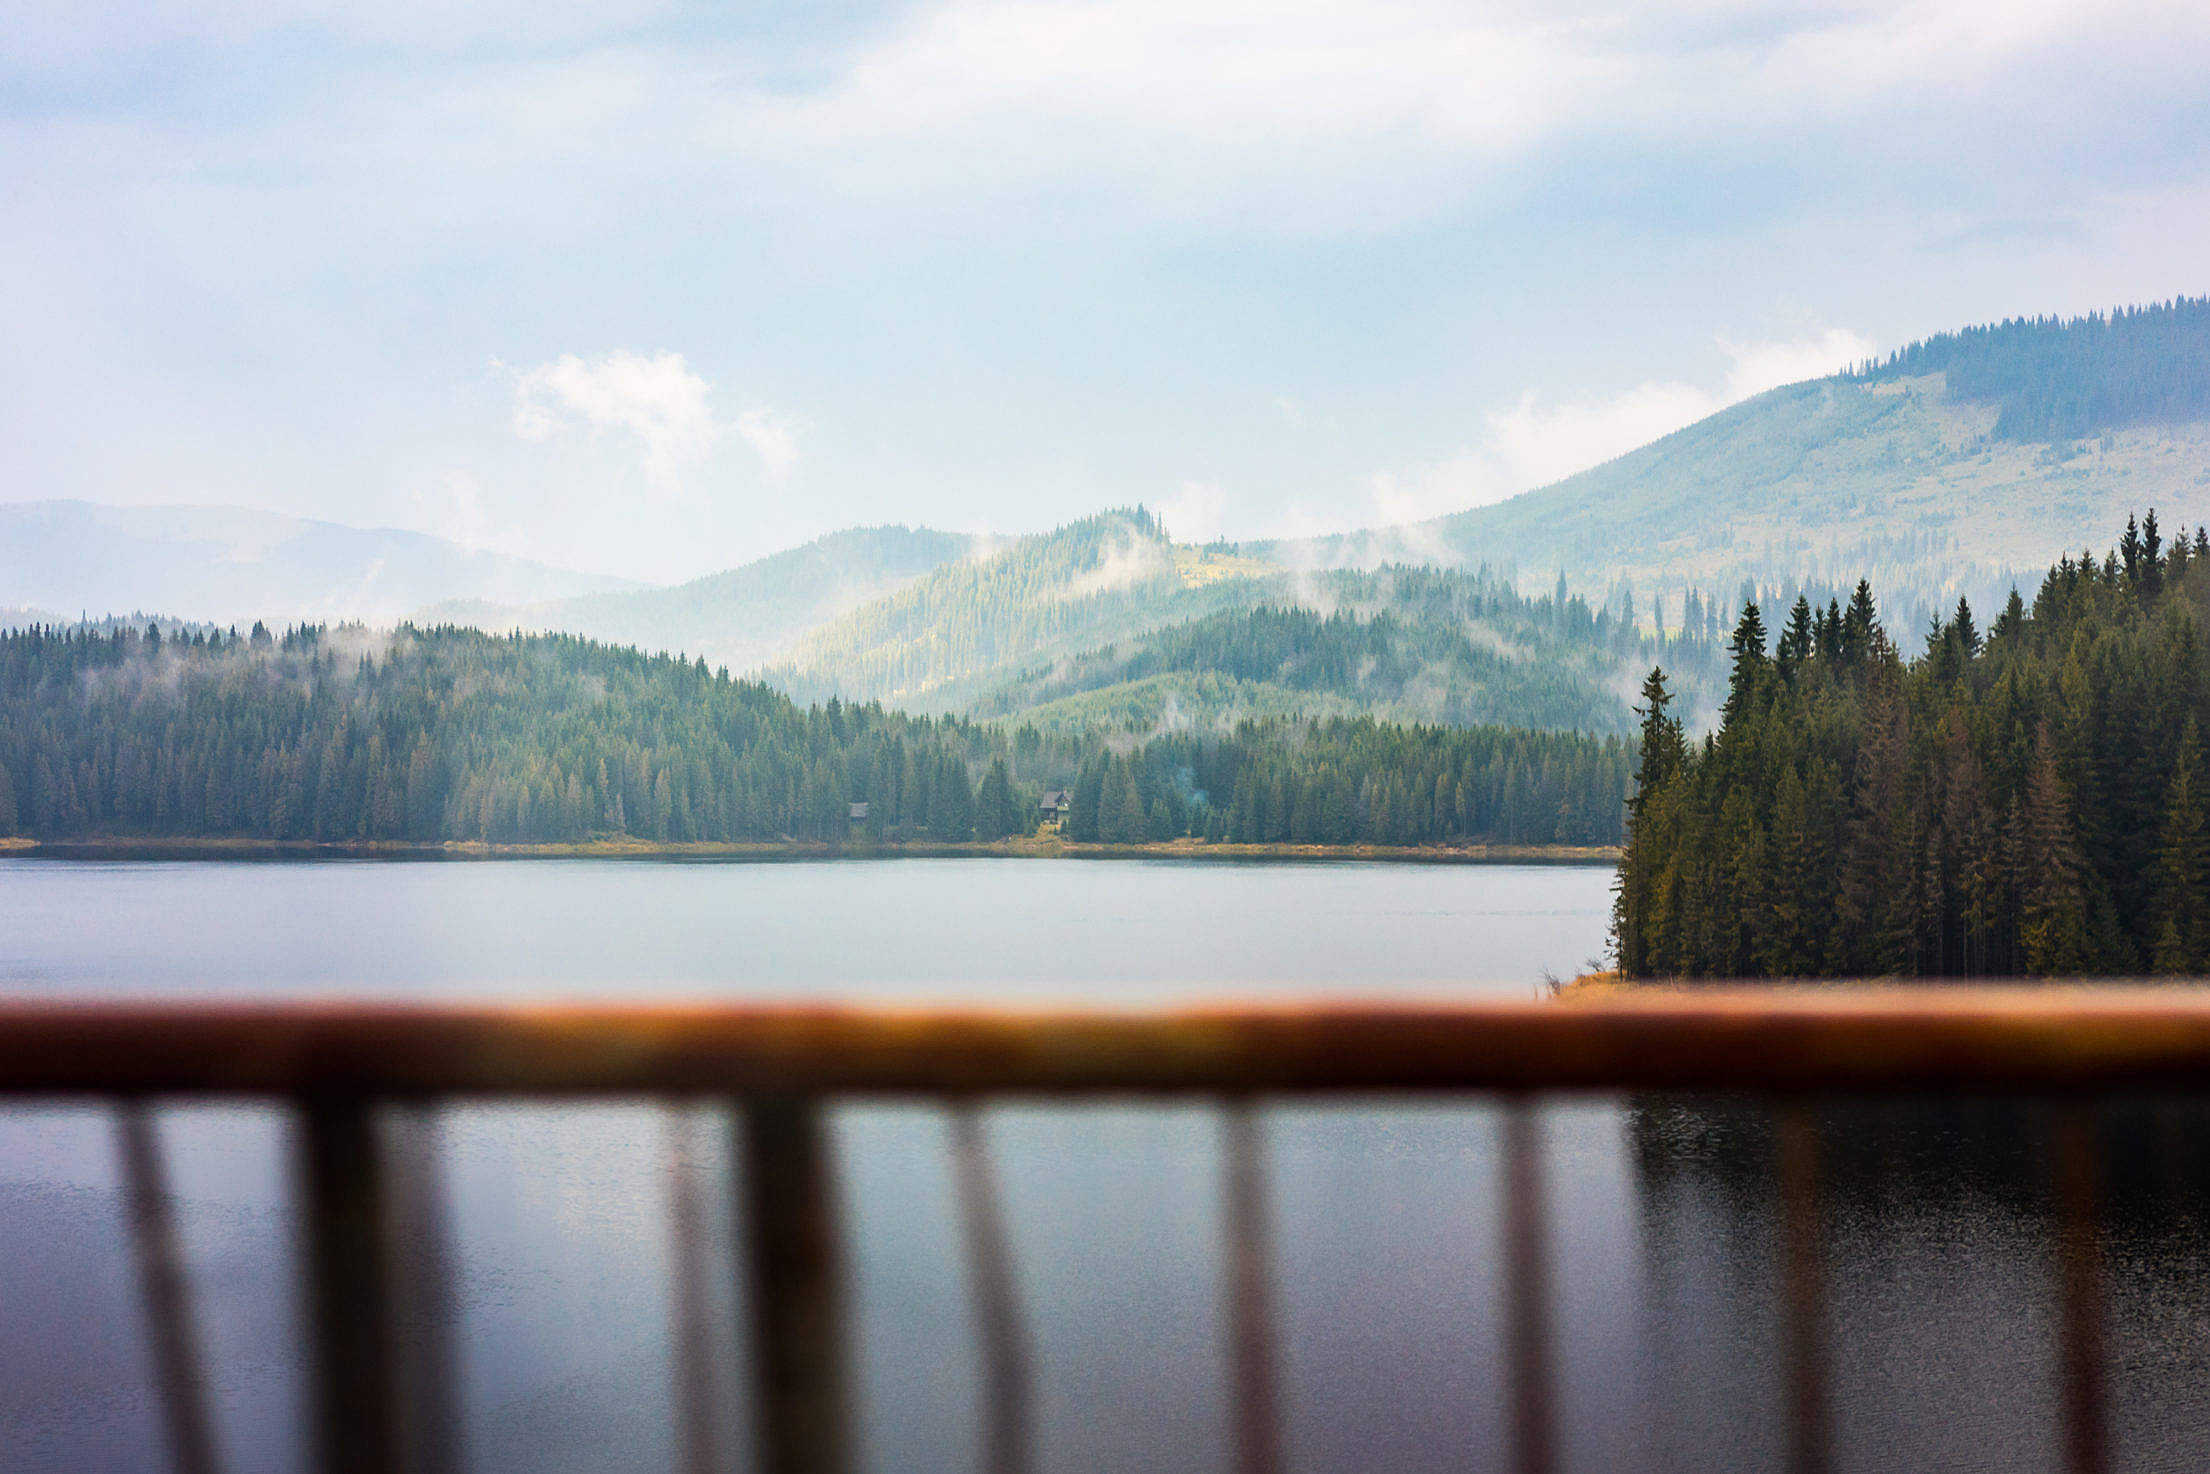 Scenic View of Lake and Foggy Forest Seen Through Car Window Free Stock Photo